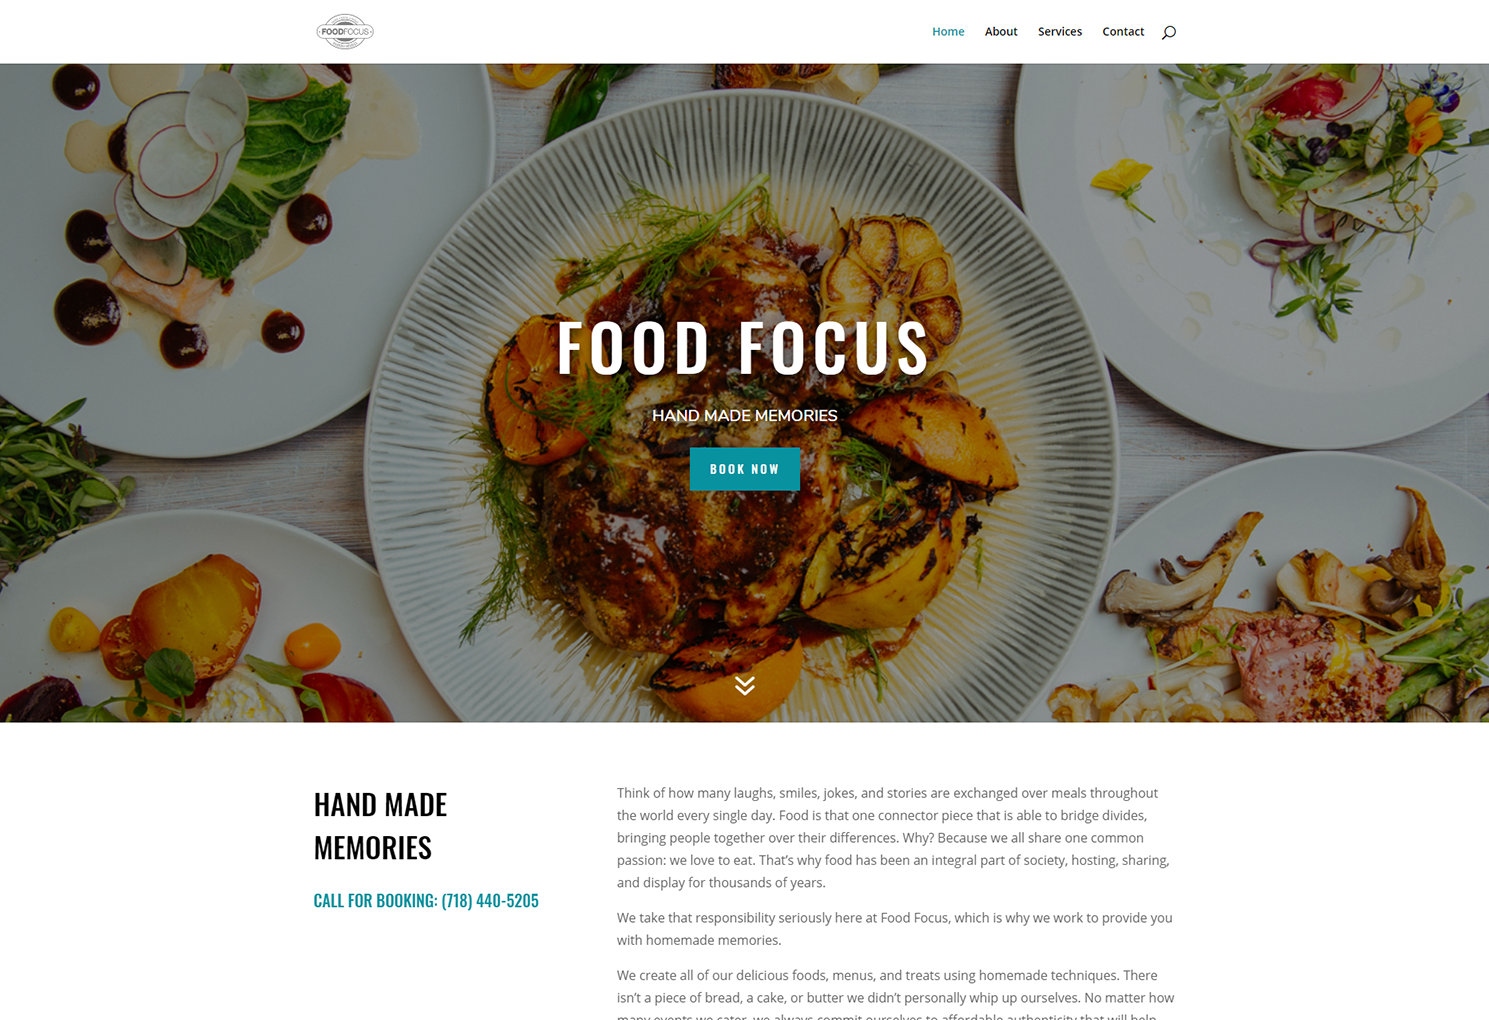 The Food Focus